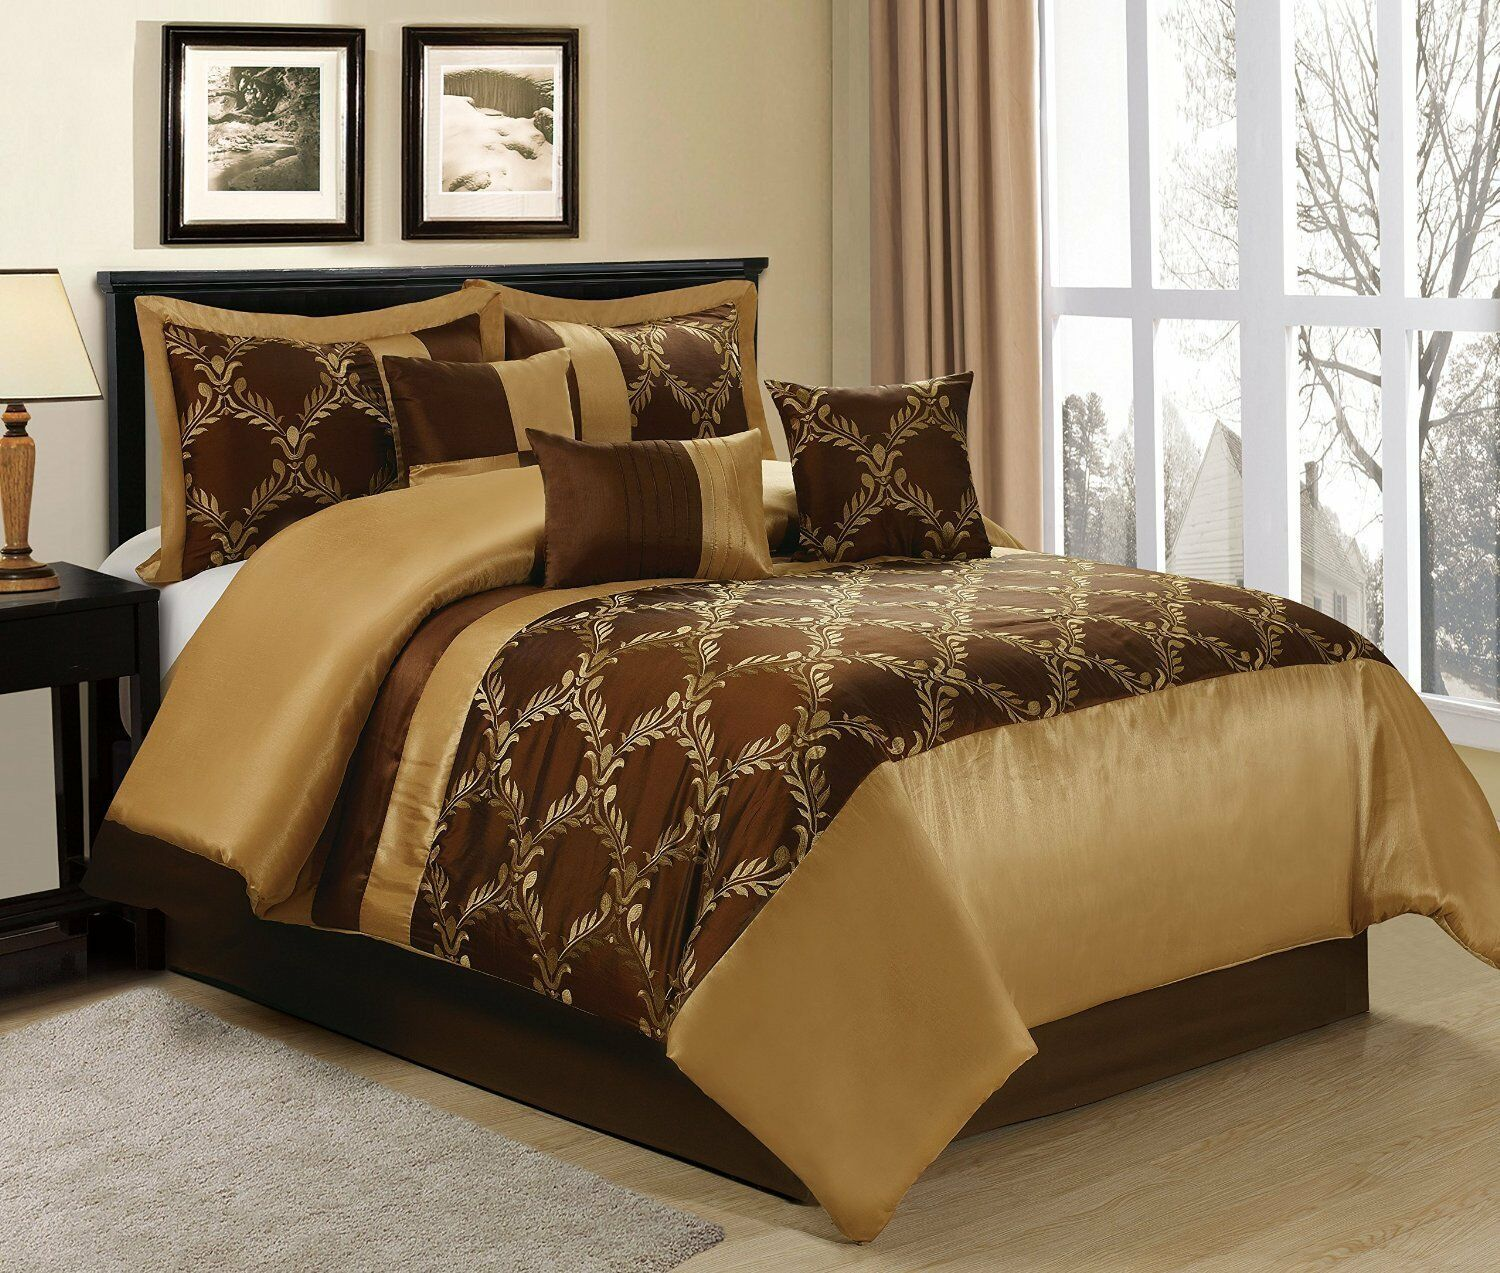 LUXURY 7 PCS MEDALLION DESIGN  COMFORTER SET BED IN A BAG 3 SIZES AVAILABLE NEW.